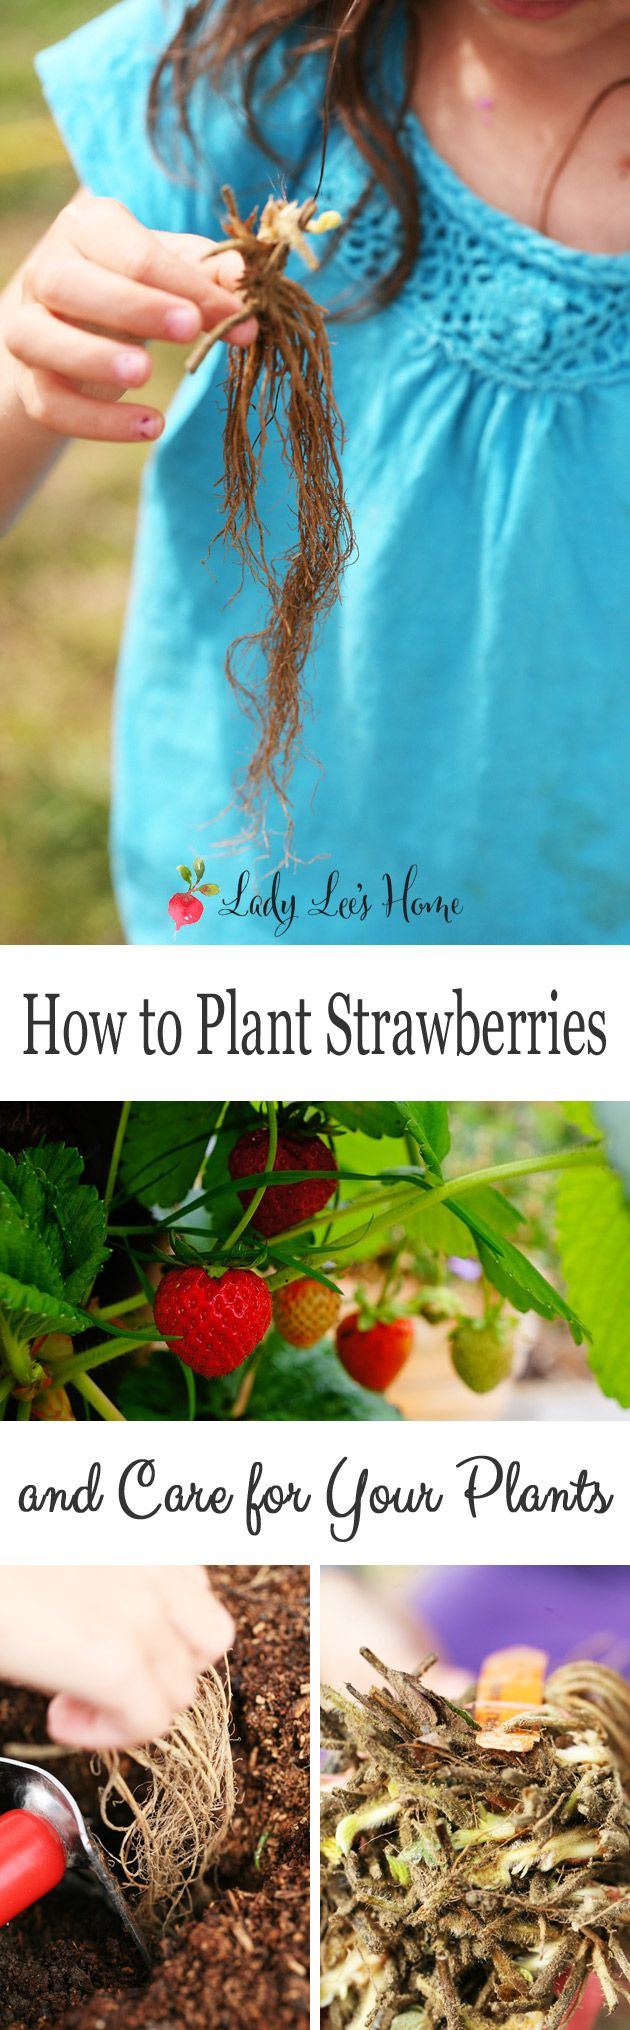 Planting strawberries is so simple! Those plants are super hardy and grow very fast. This is a picture tutorial on how to plant and grow strawberries.